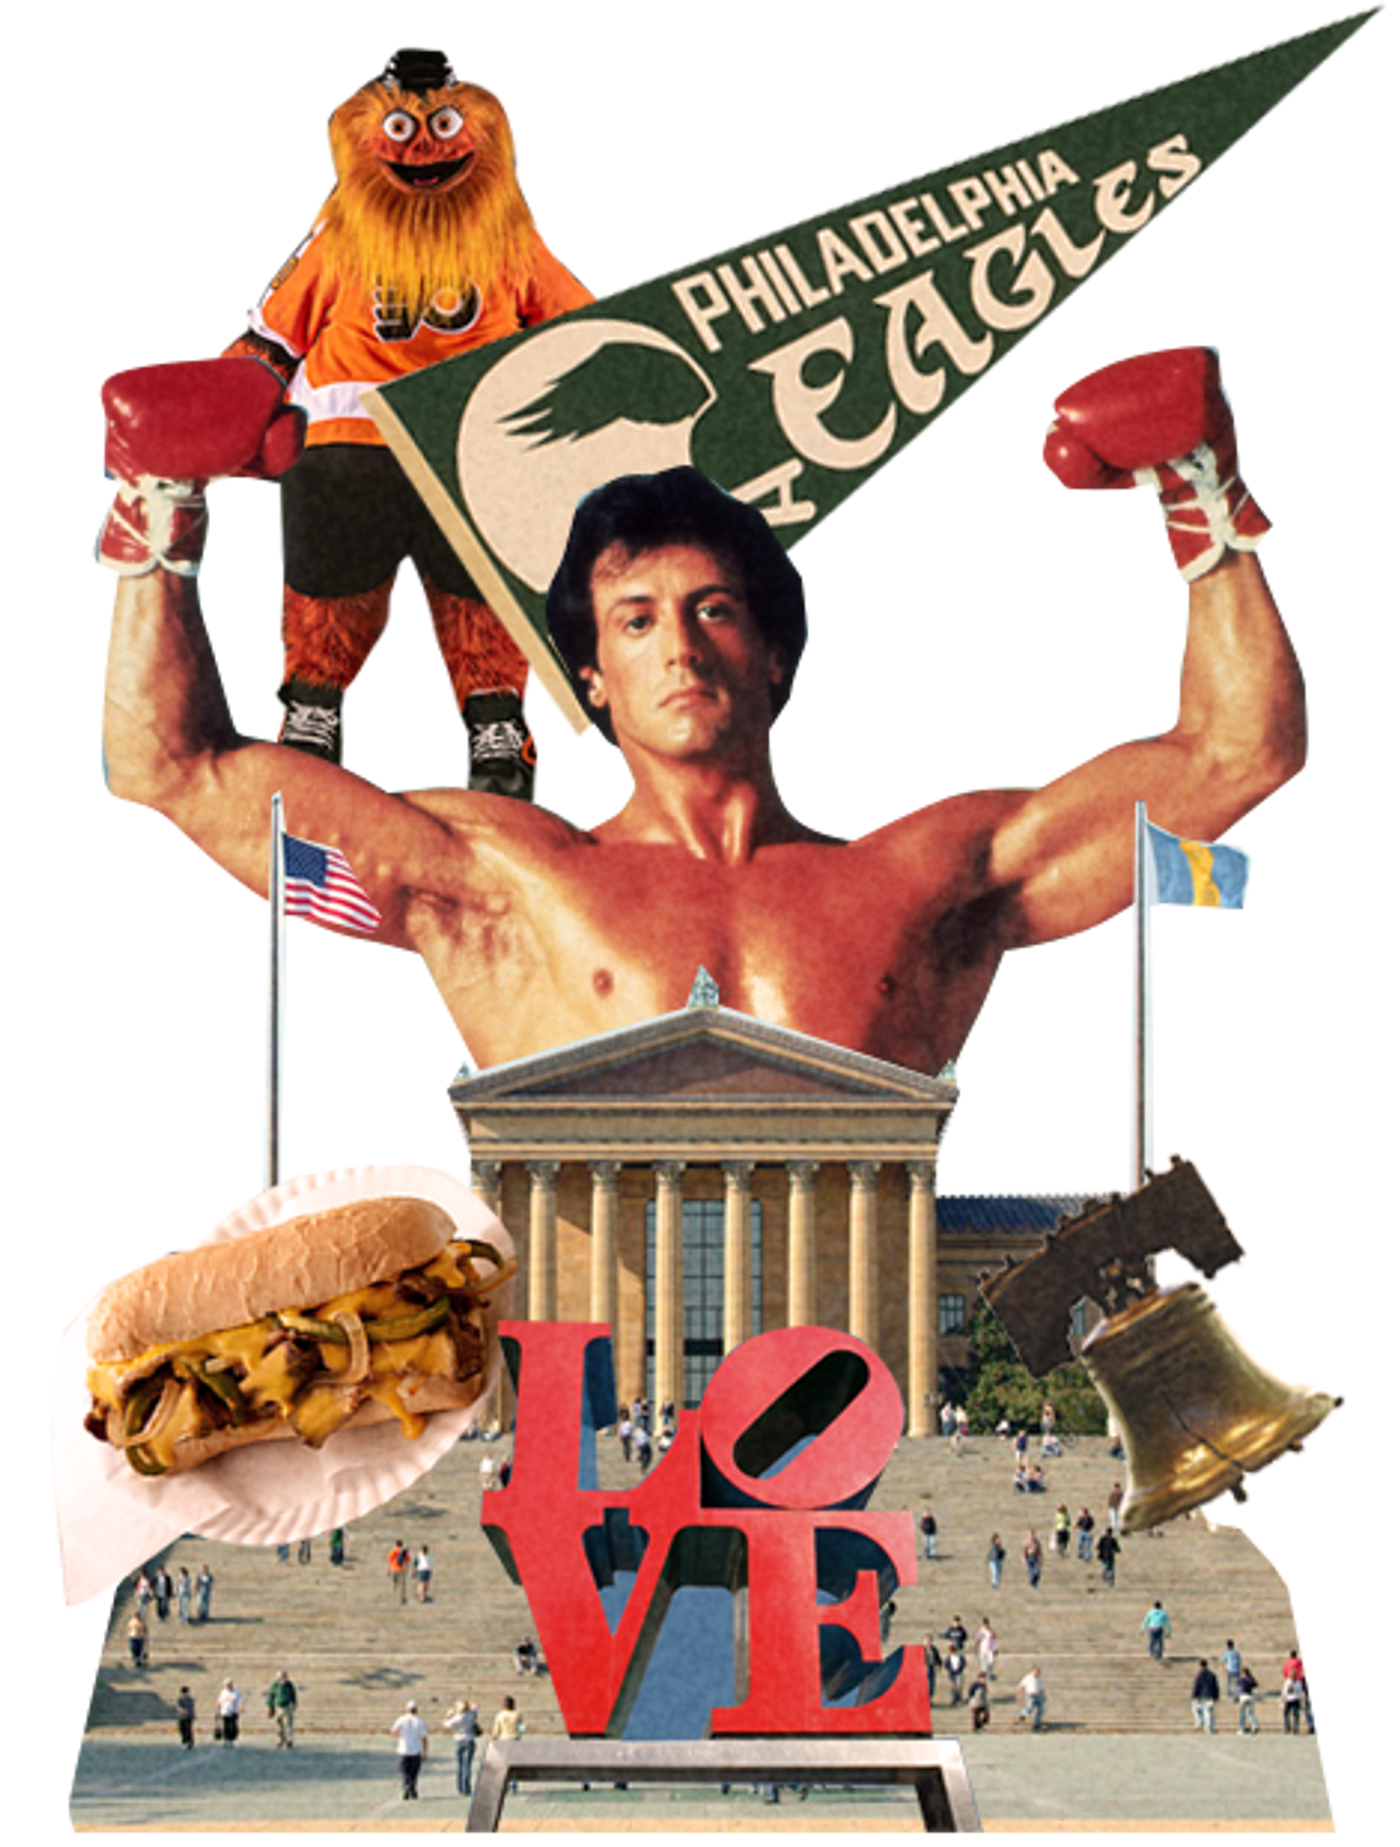 Collage of Philadelphia with cheese steak sandwich and liberty bell.